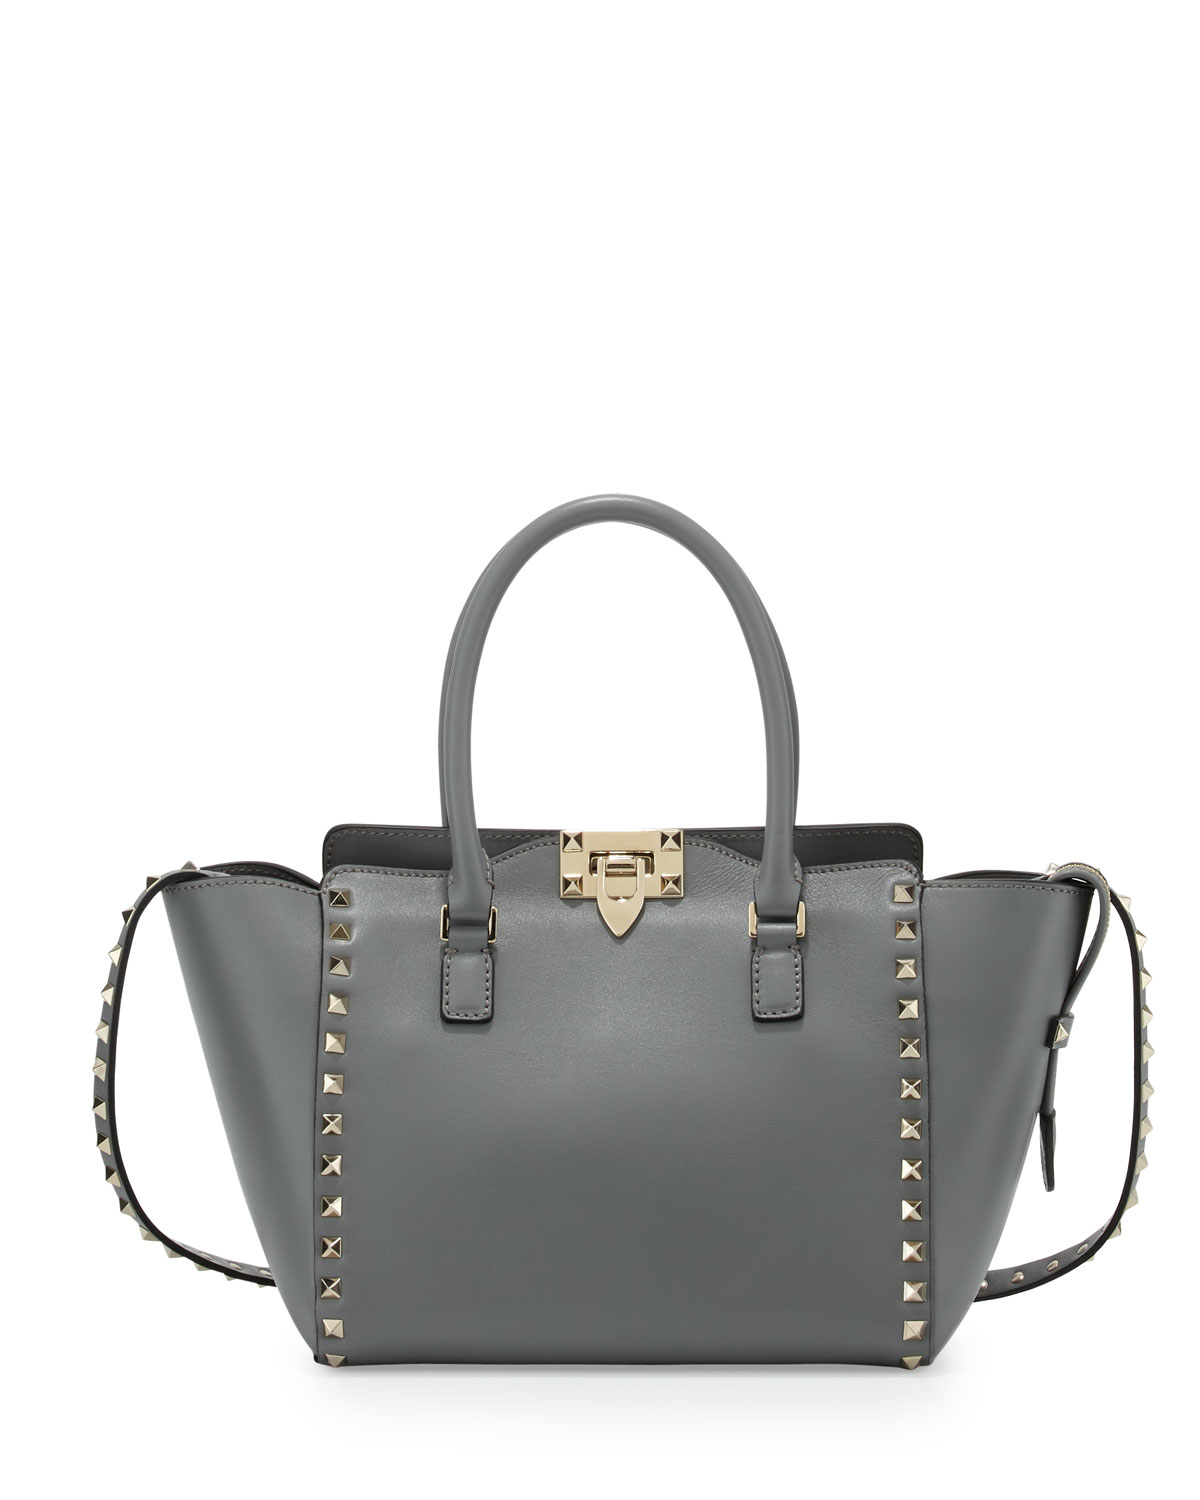 4fc069768 Gallery. Previously sold at: Neiman Marcus · Women's Valentino Rockstud Bags